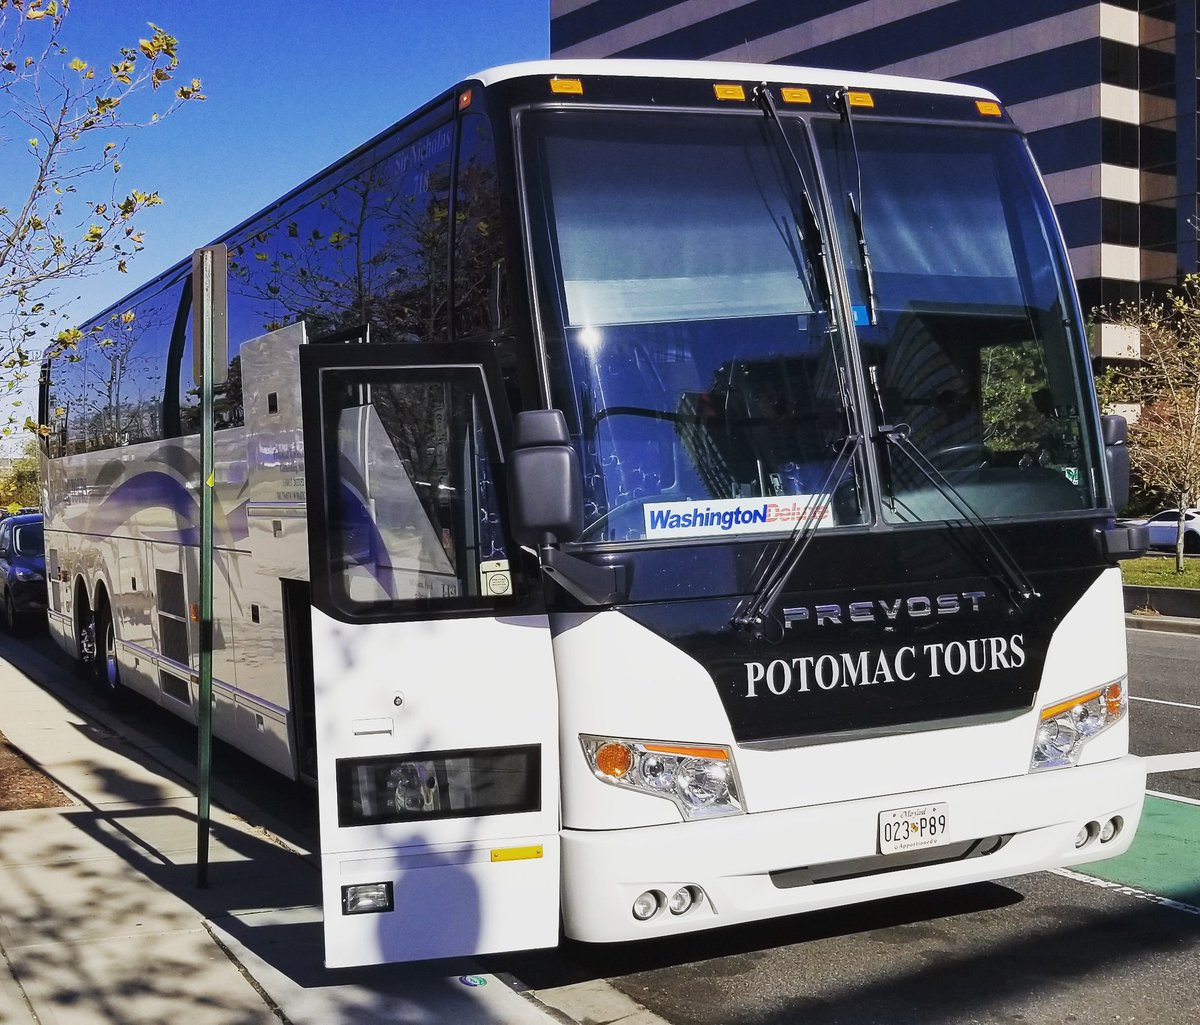 #sirnicholas is loading and headed to #NYC! #thanksgivingtravel season is upon us! Have a safe and enjoyable #Thanksgiving from all of us at #potomactours! #seetheusa #washingtondeluxe #washingtondeluxebus<br>http://pic.twitter.com/WAFv5SBFTP